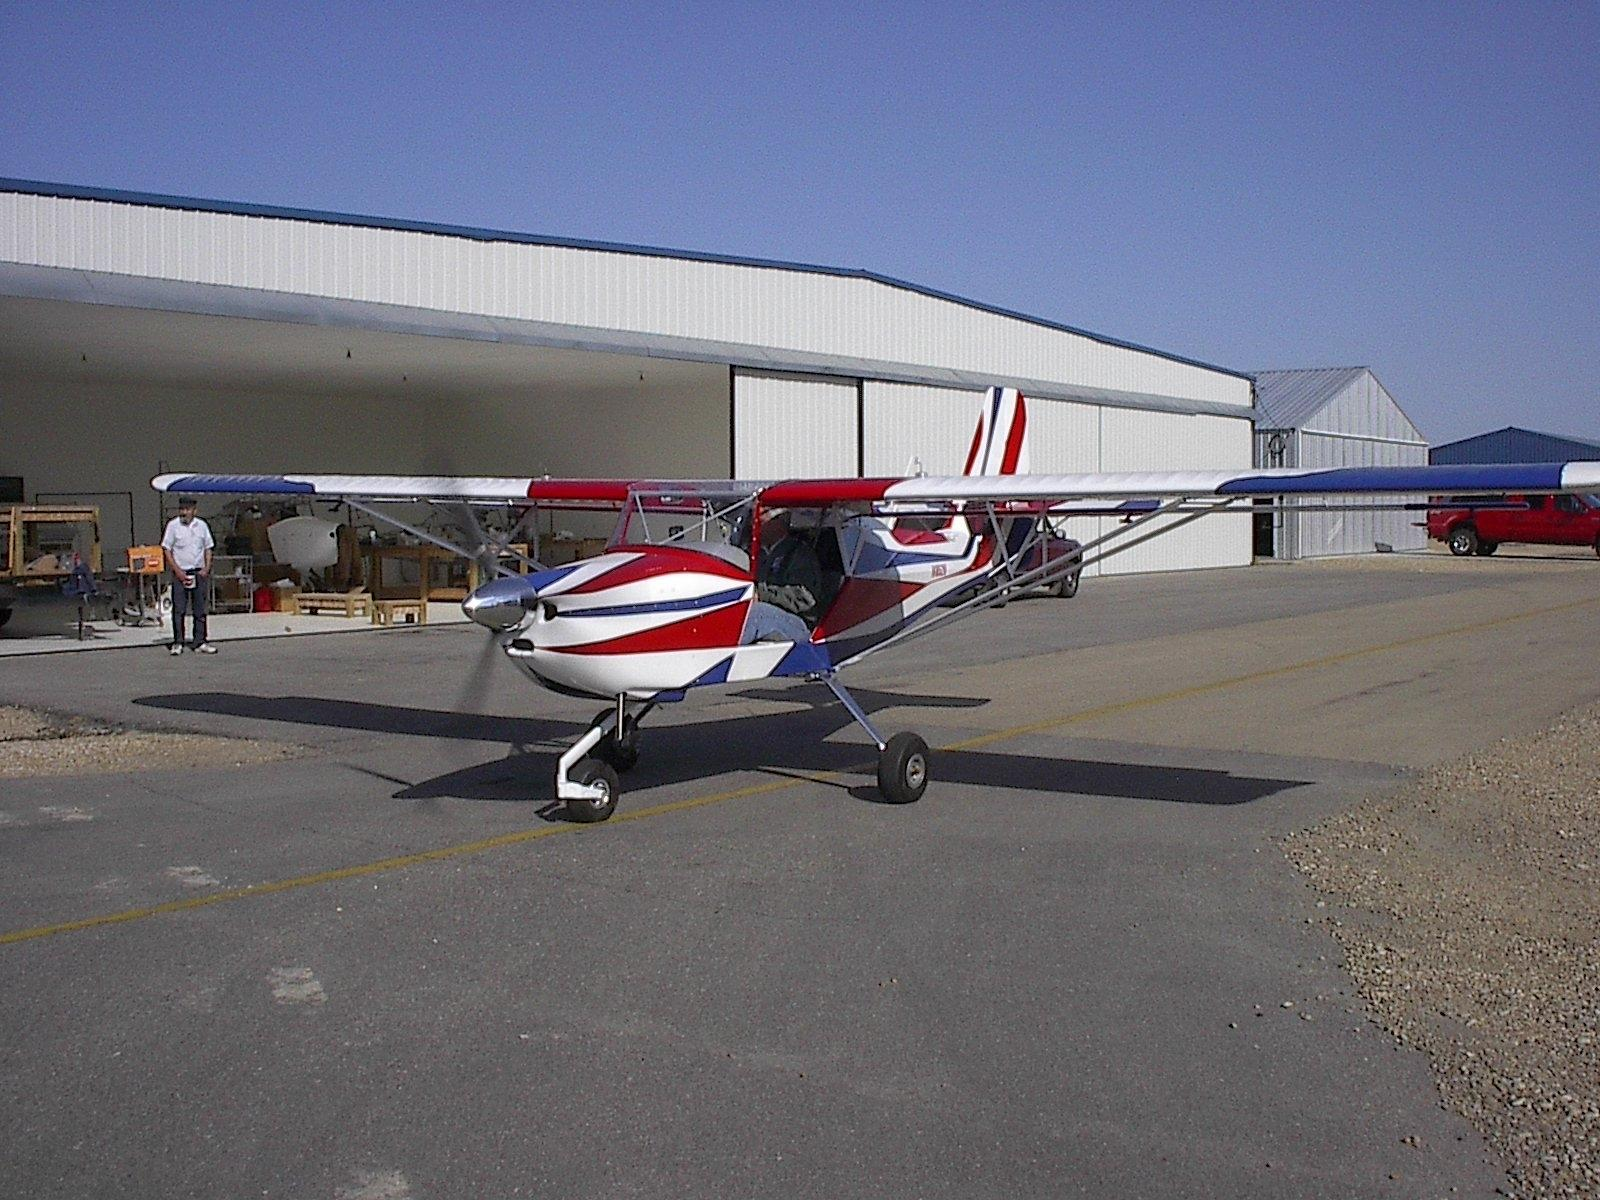 Kitfox Airplane Images - Reverse Search